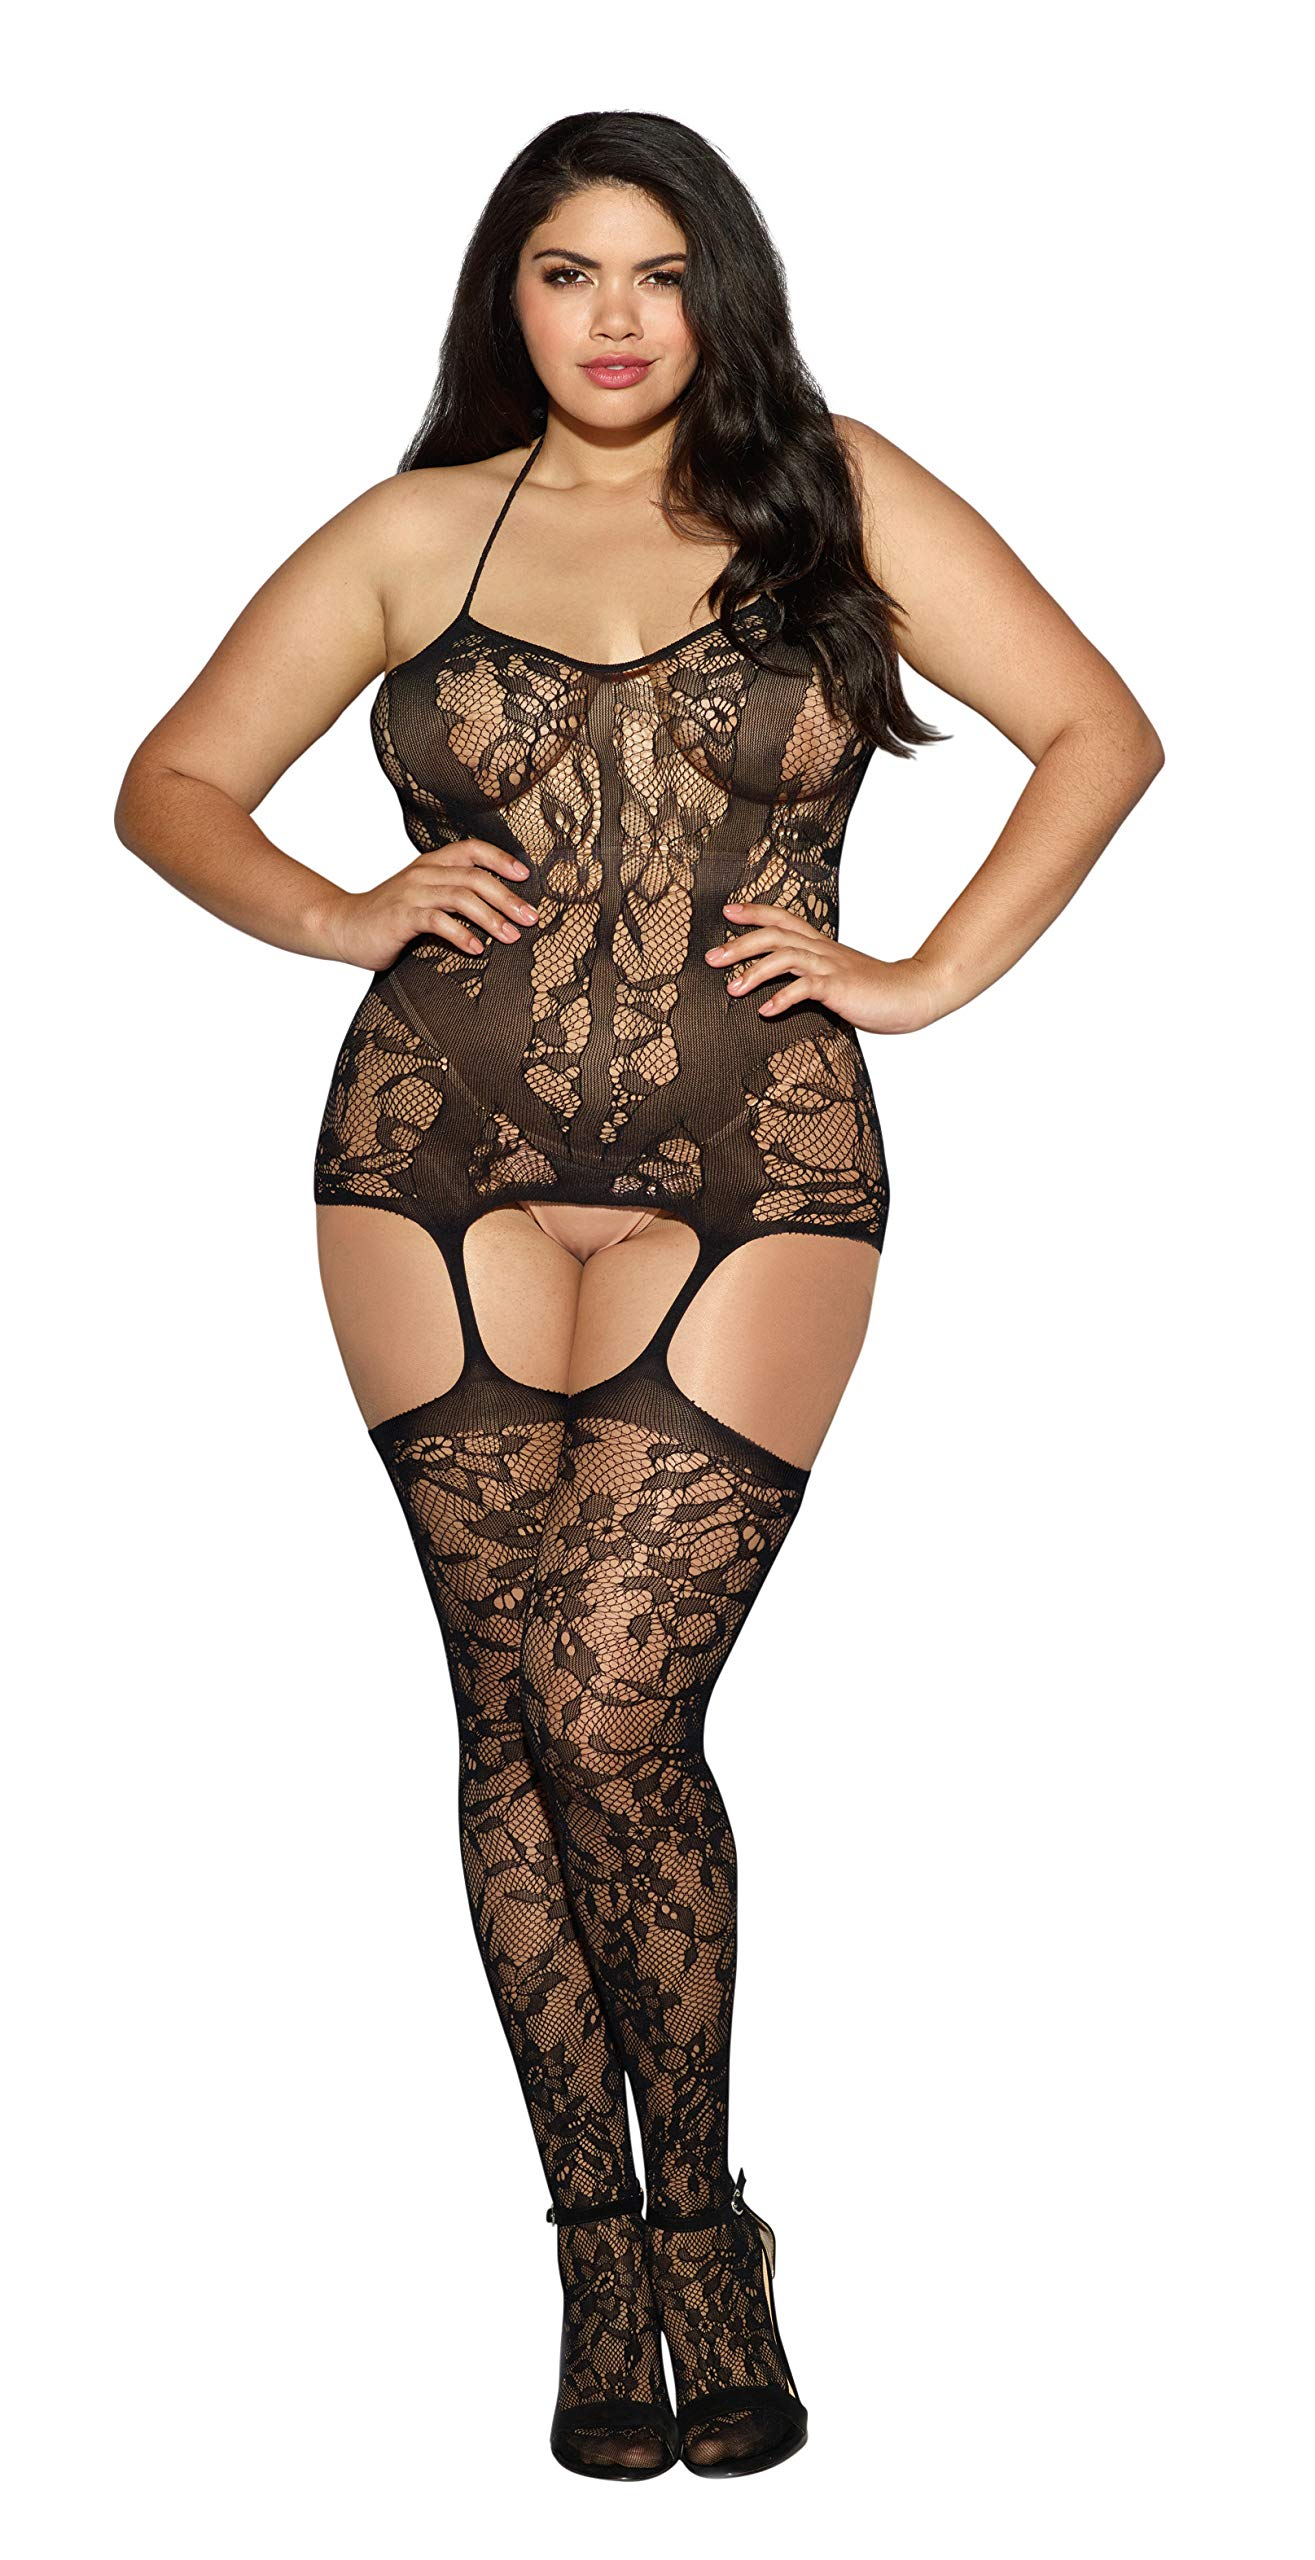 d118cfc6097 Dreamgirl Women s Plus-Size Trinidad Halter Garter Dress With Attached  Stockings product image